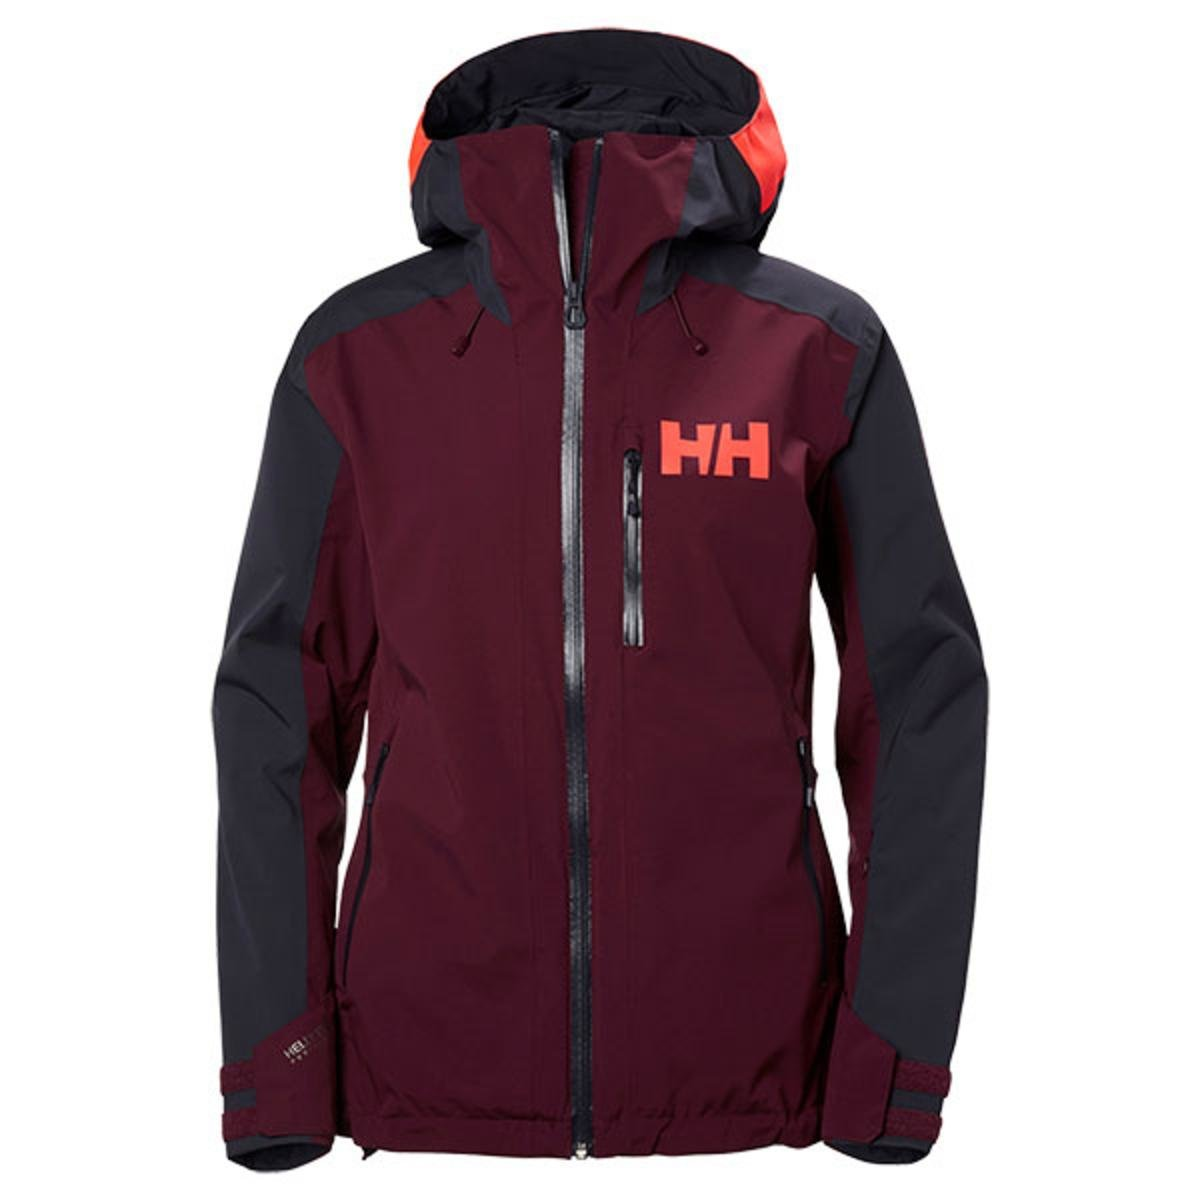 6f69158244d07 Helly Hansen Women s Jade Jacket - The Warming Store